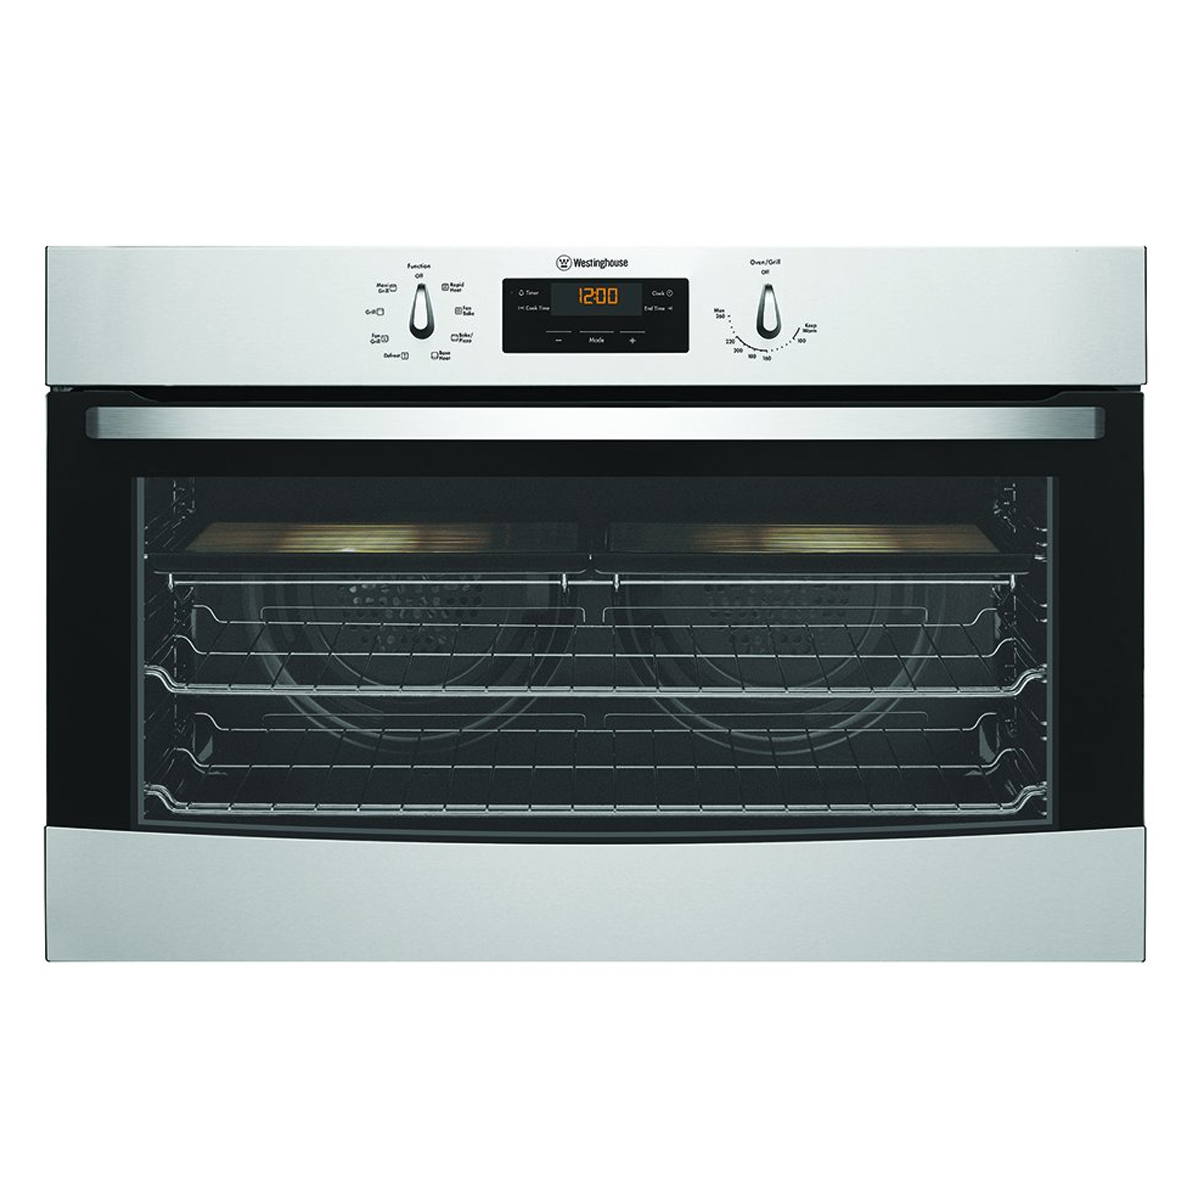 Westinghouse WVE914SB 90cm Electric Built-In Oven 72964